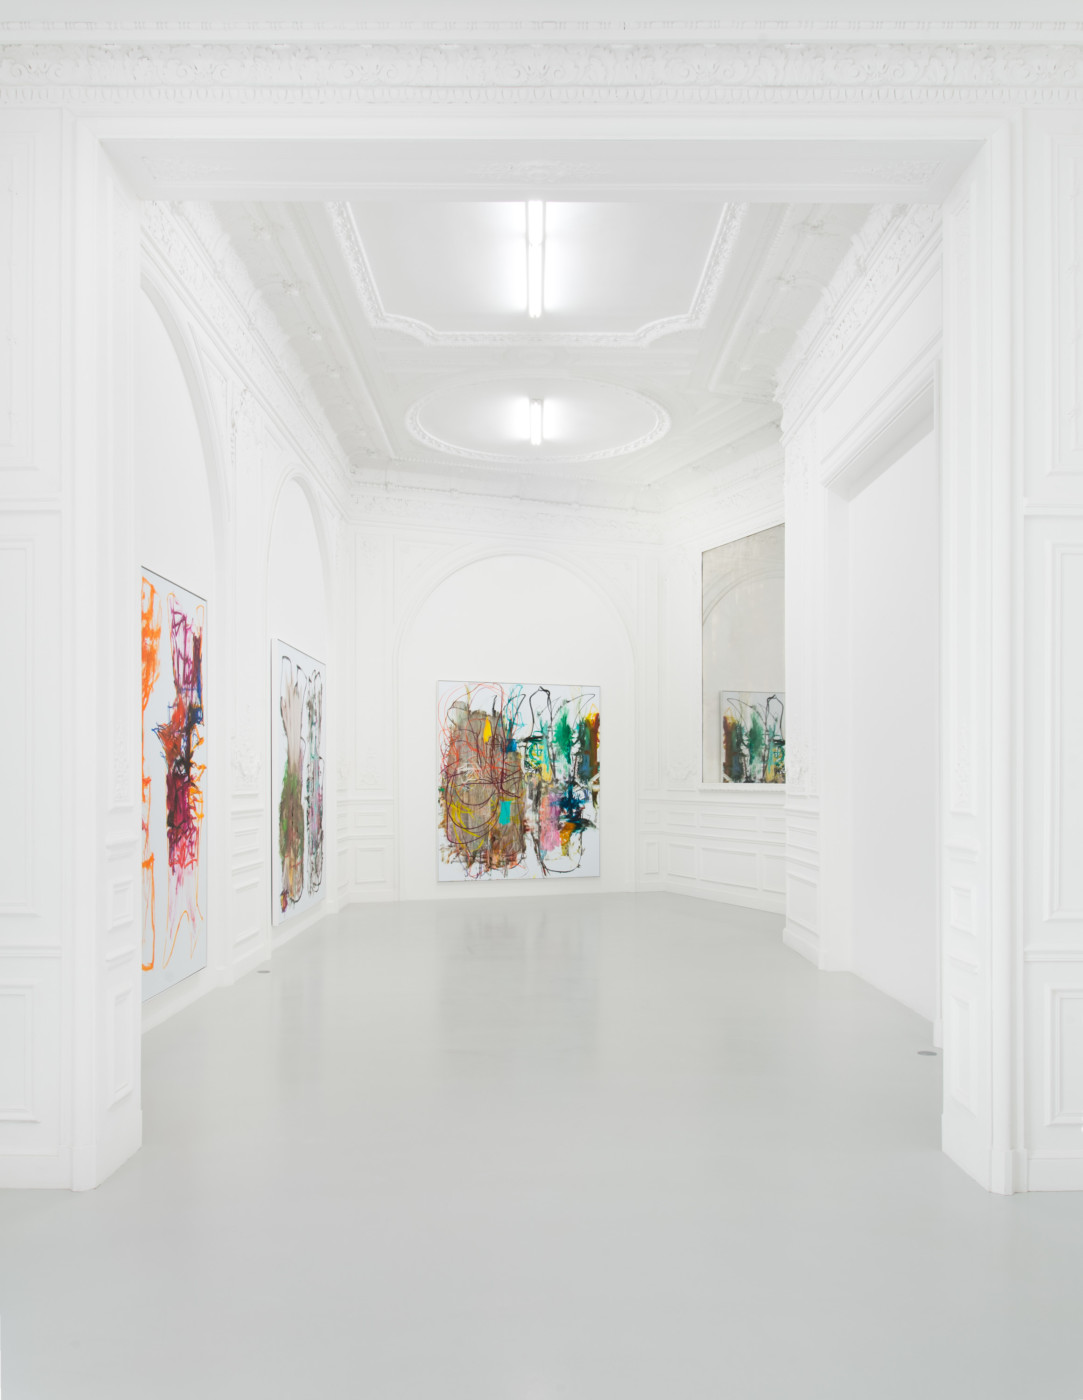 AARON  GARBER-MAIKOVSKA  homebirth , 2018, High Art, Paris, installation view - High Art Gallery Paris